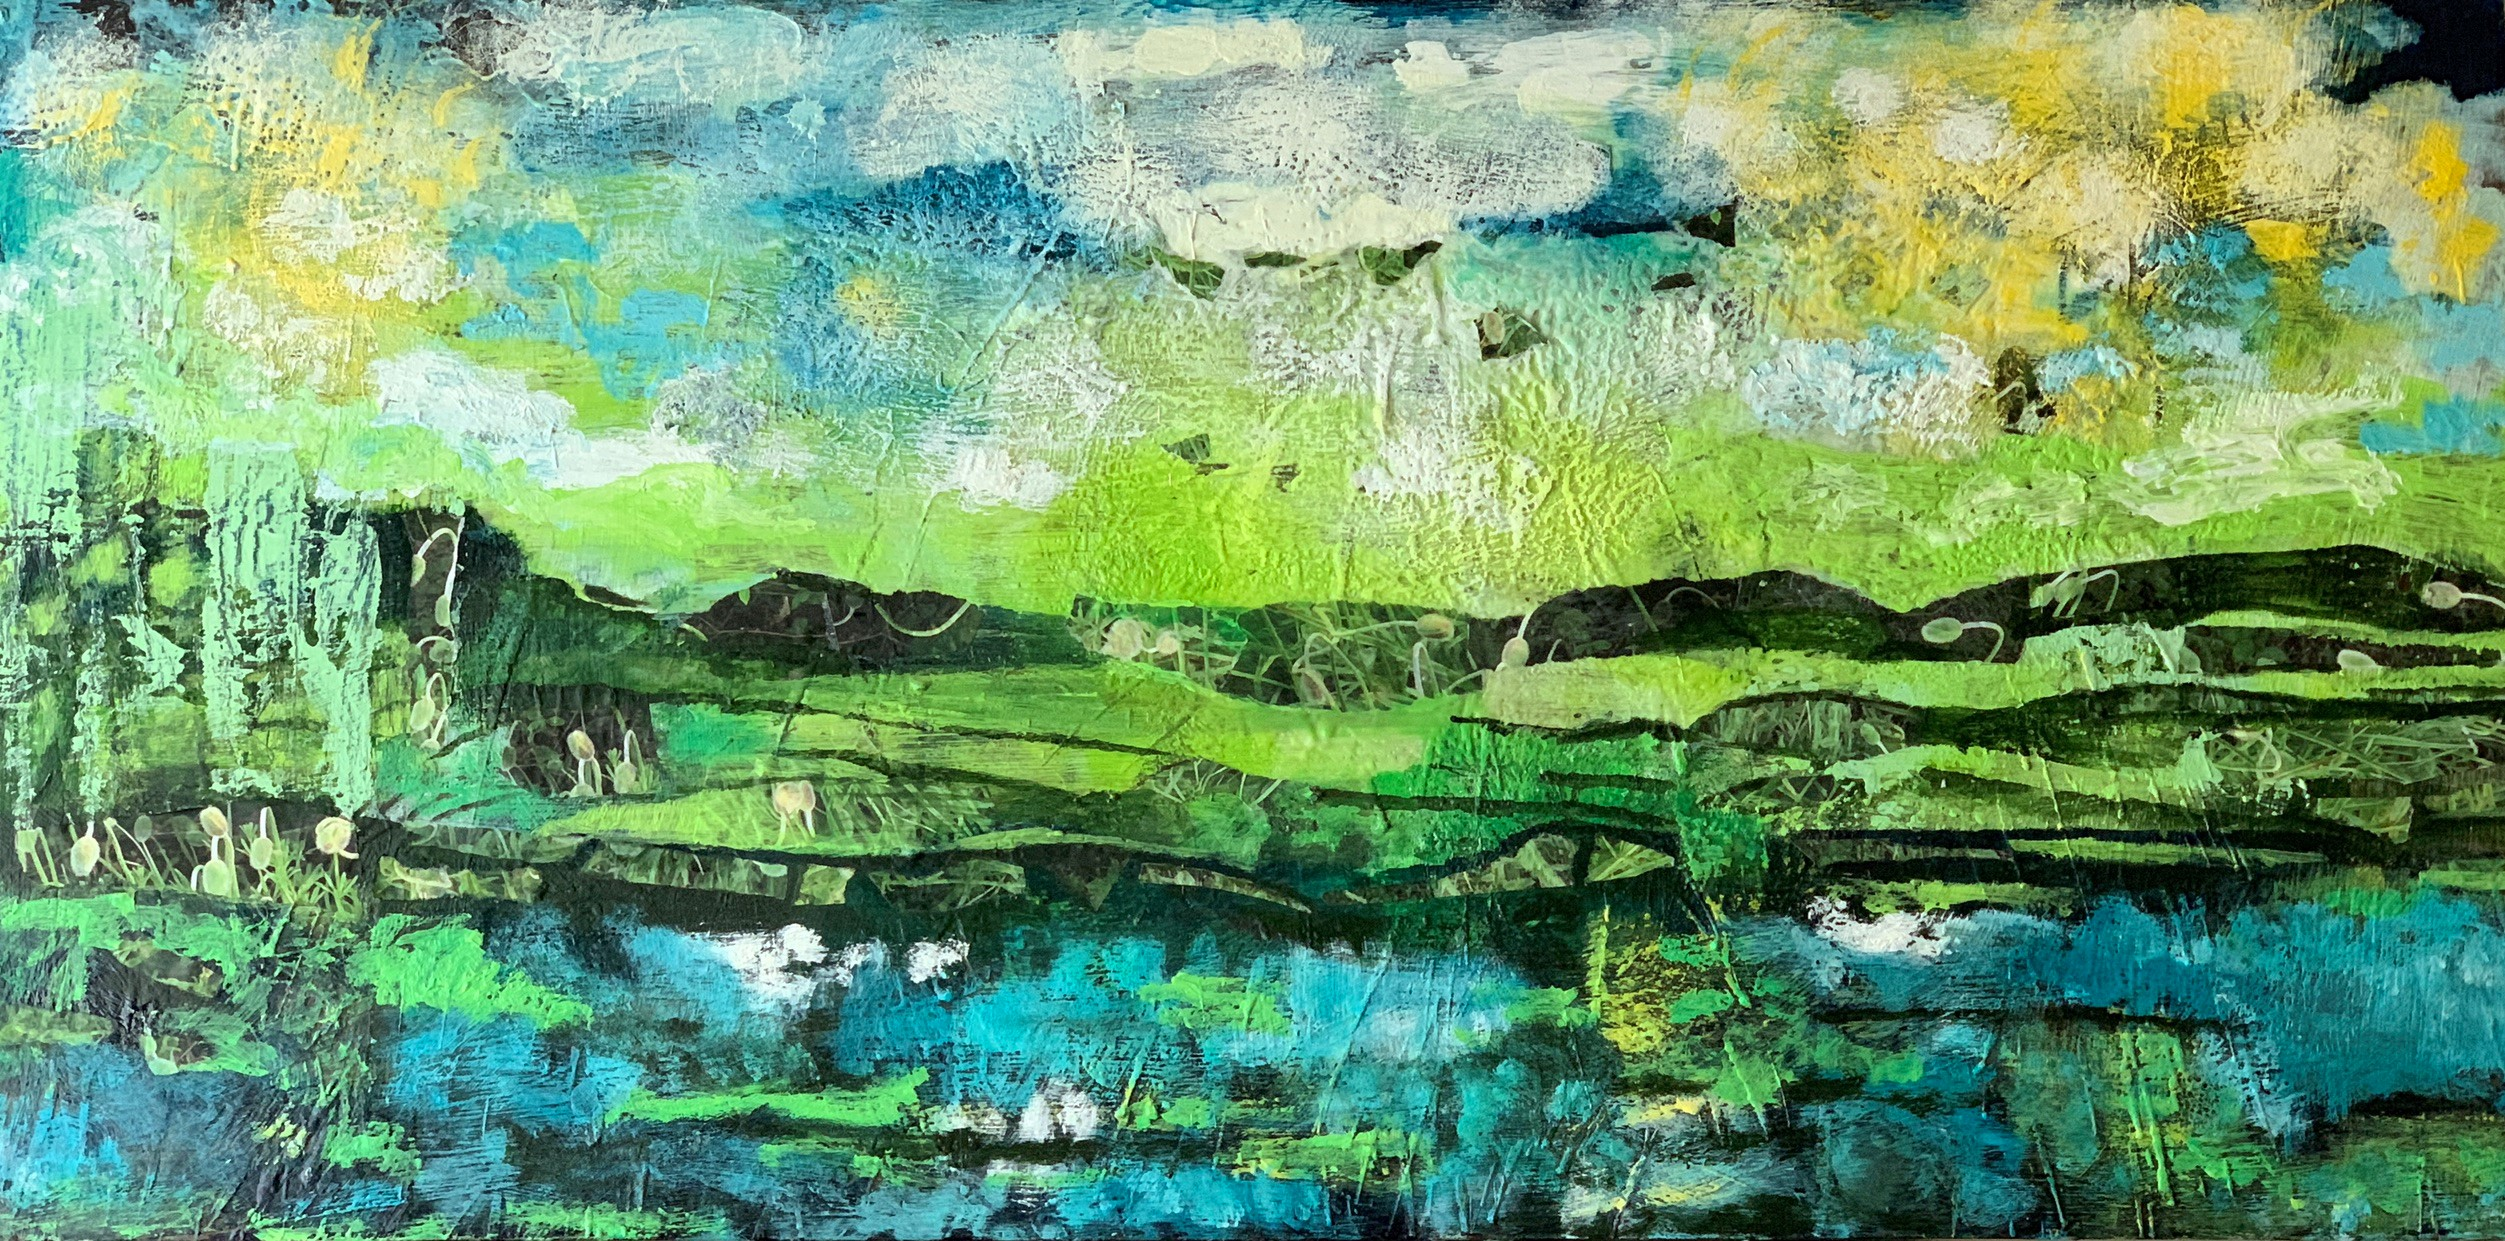 Williams_Harbor Island II_48 inches x 24 inches_Encaustic with Mixed Media